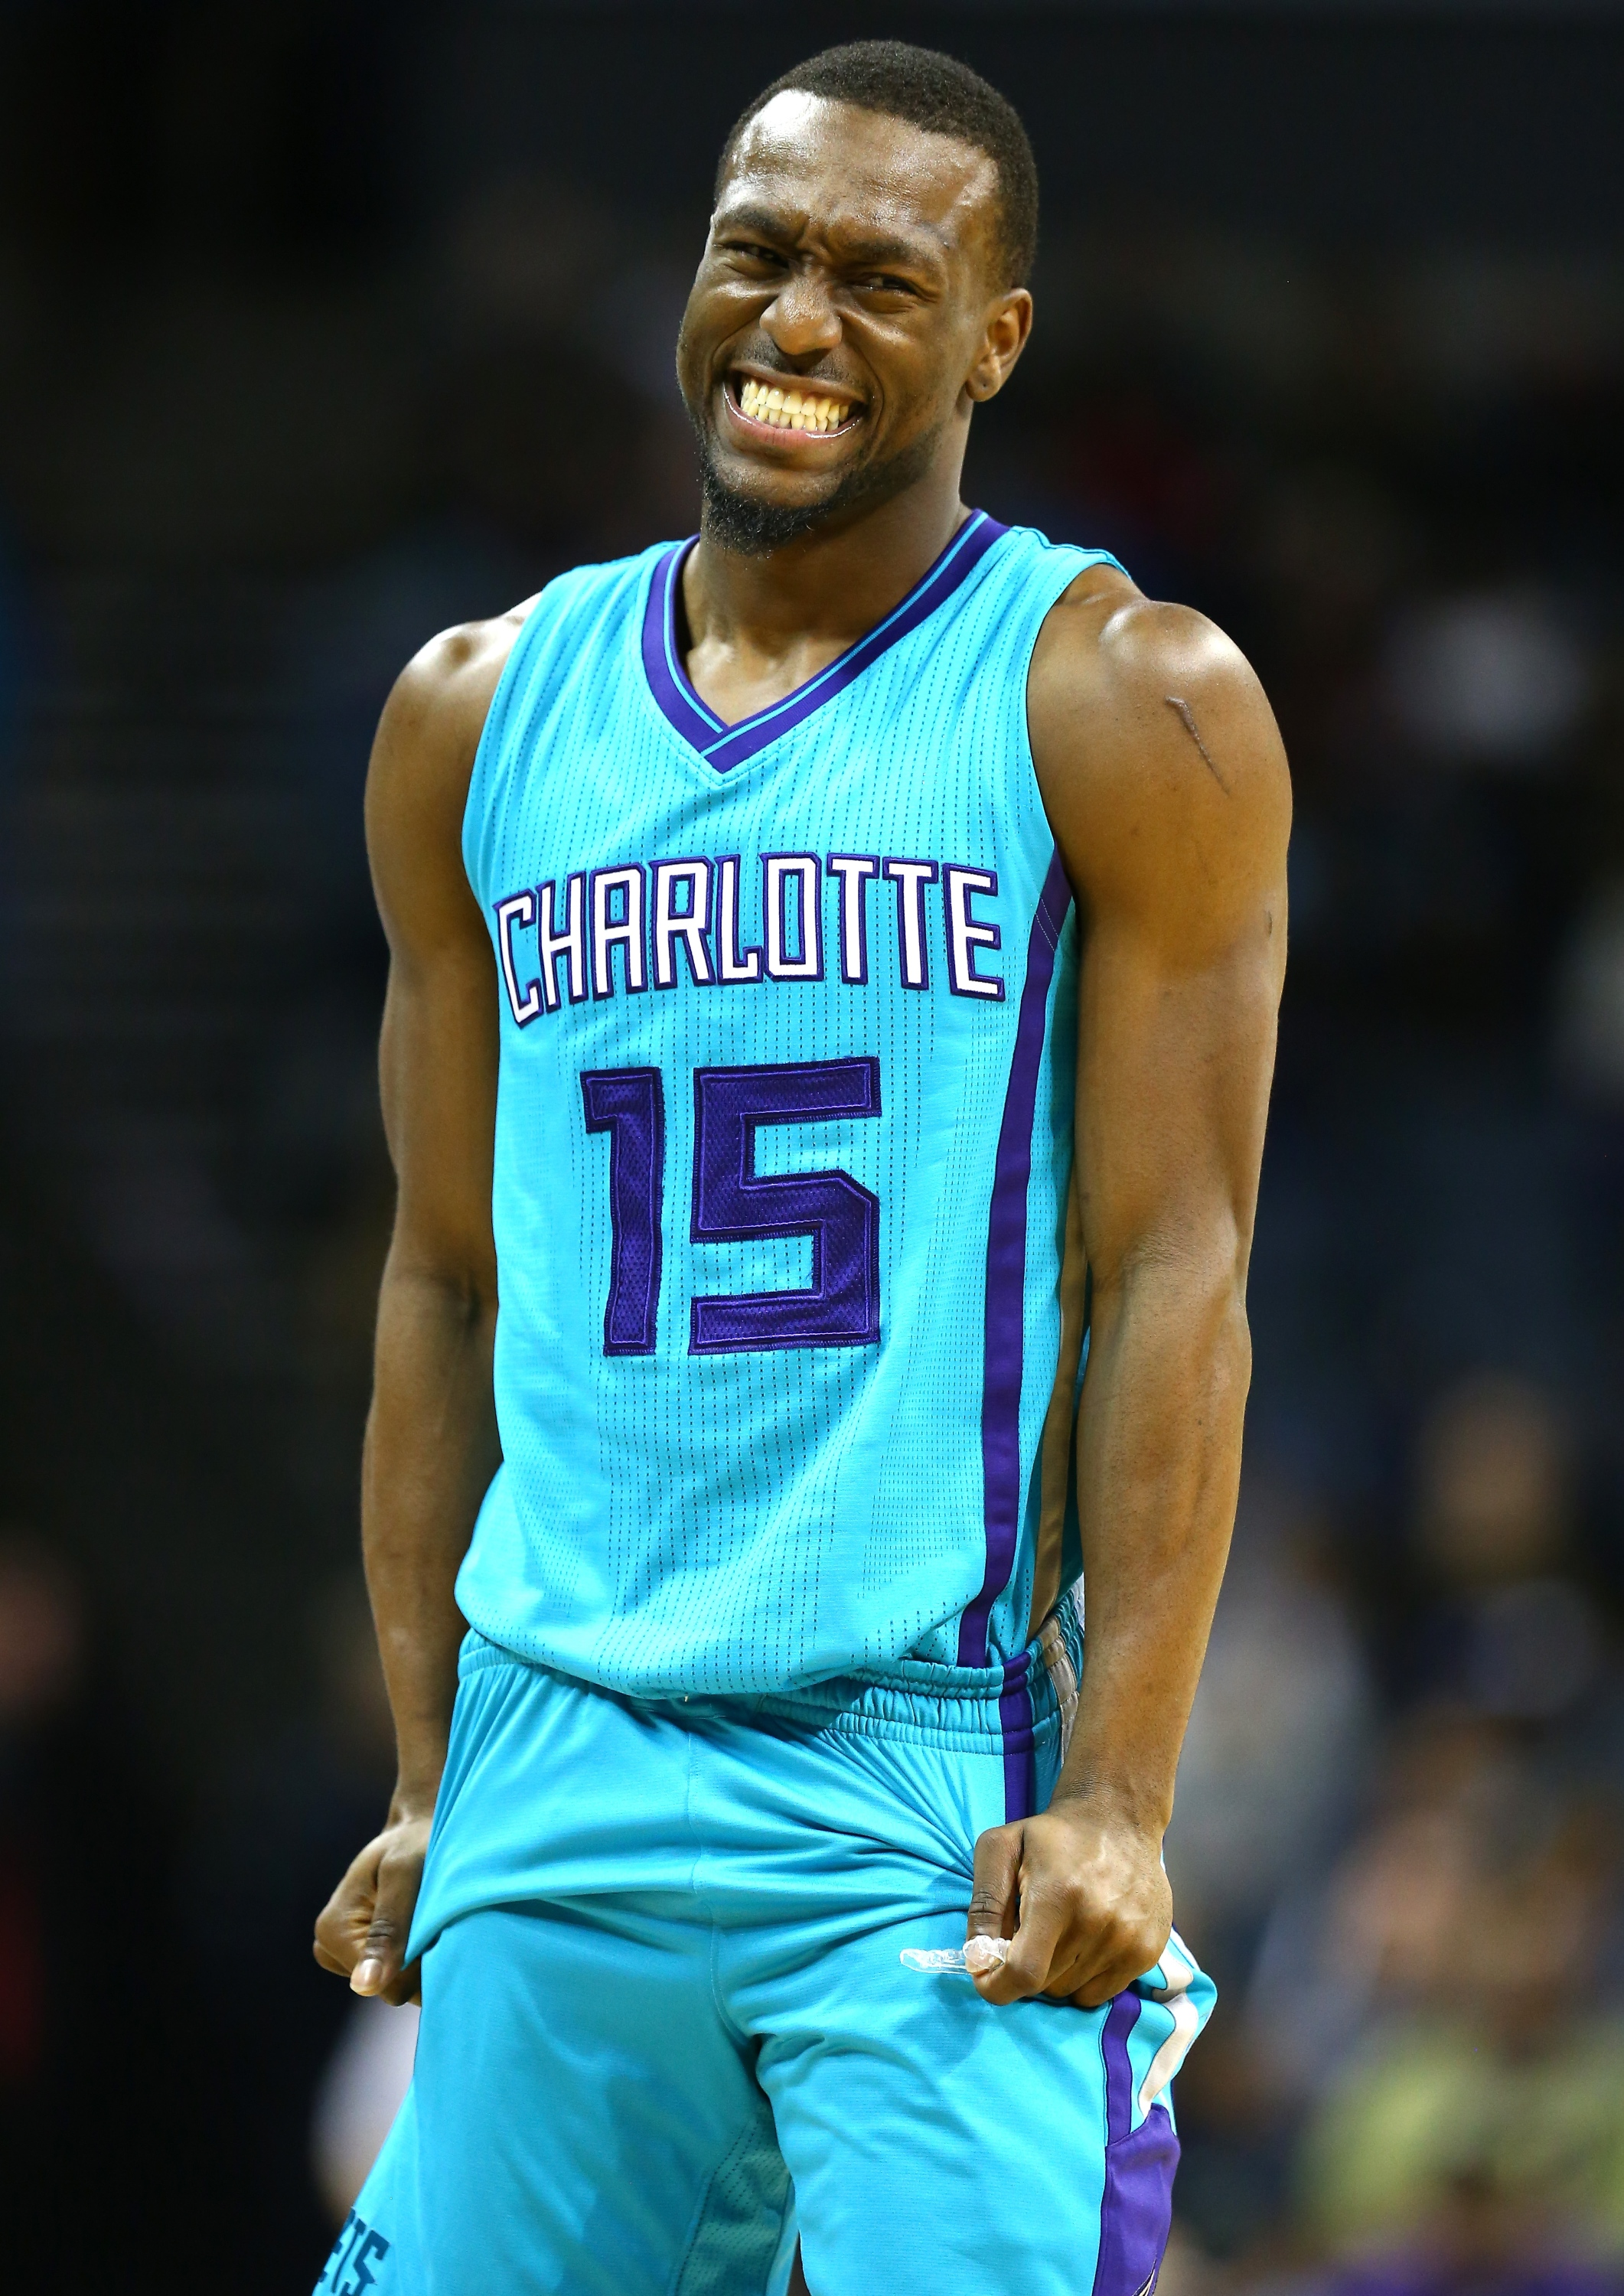 1000+ images about Charlotte Hornets on Pinterest | Charlotte hornets, Charlotte hornets logo ...